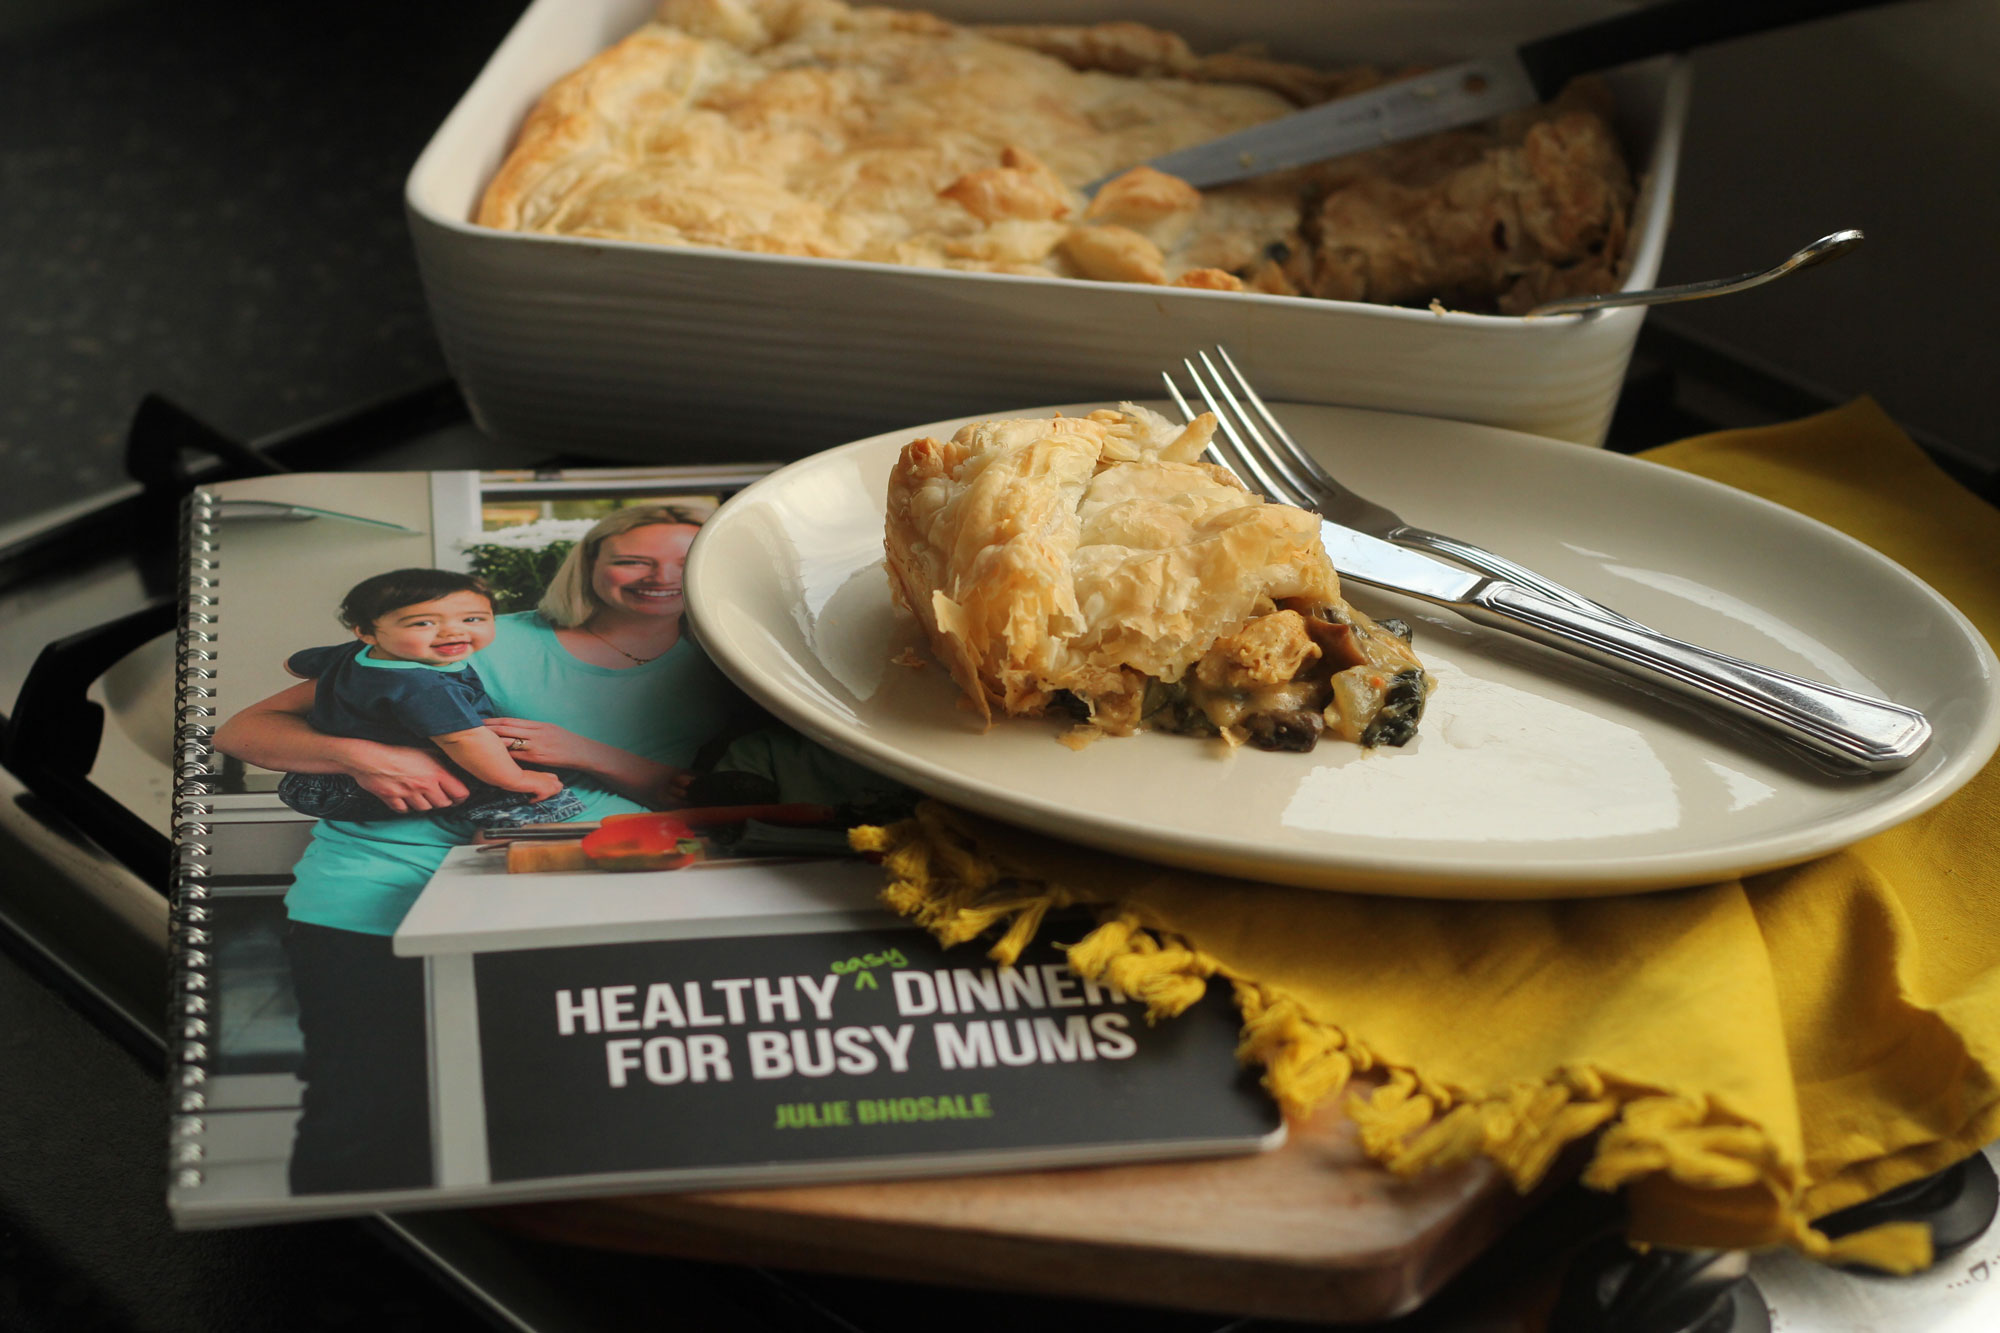 Book Review | Healthy, Easy Dinners for Busy Mums by Julie Bhosale